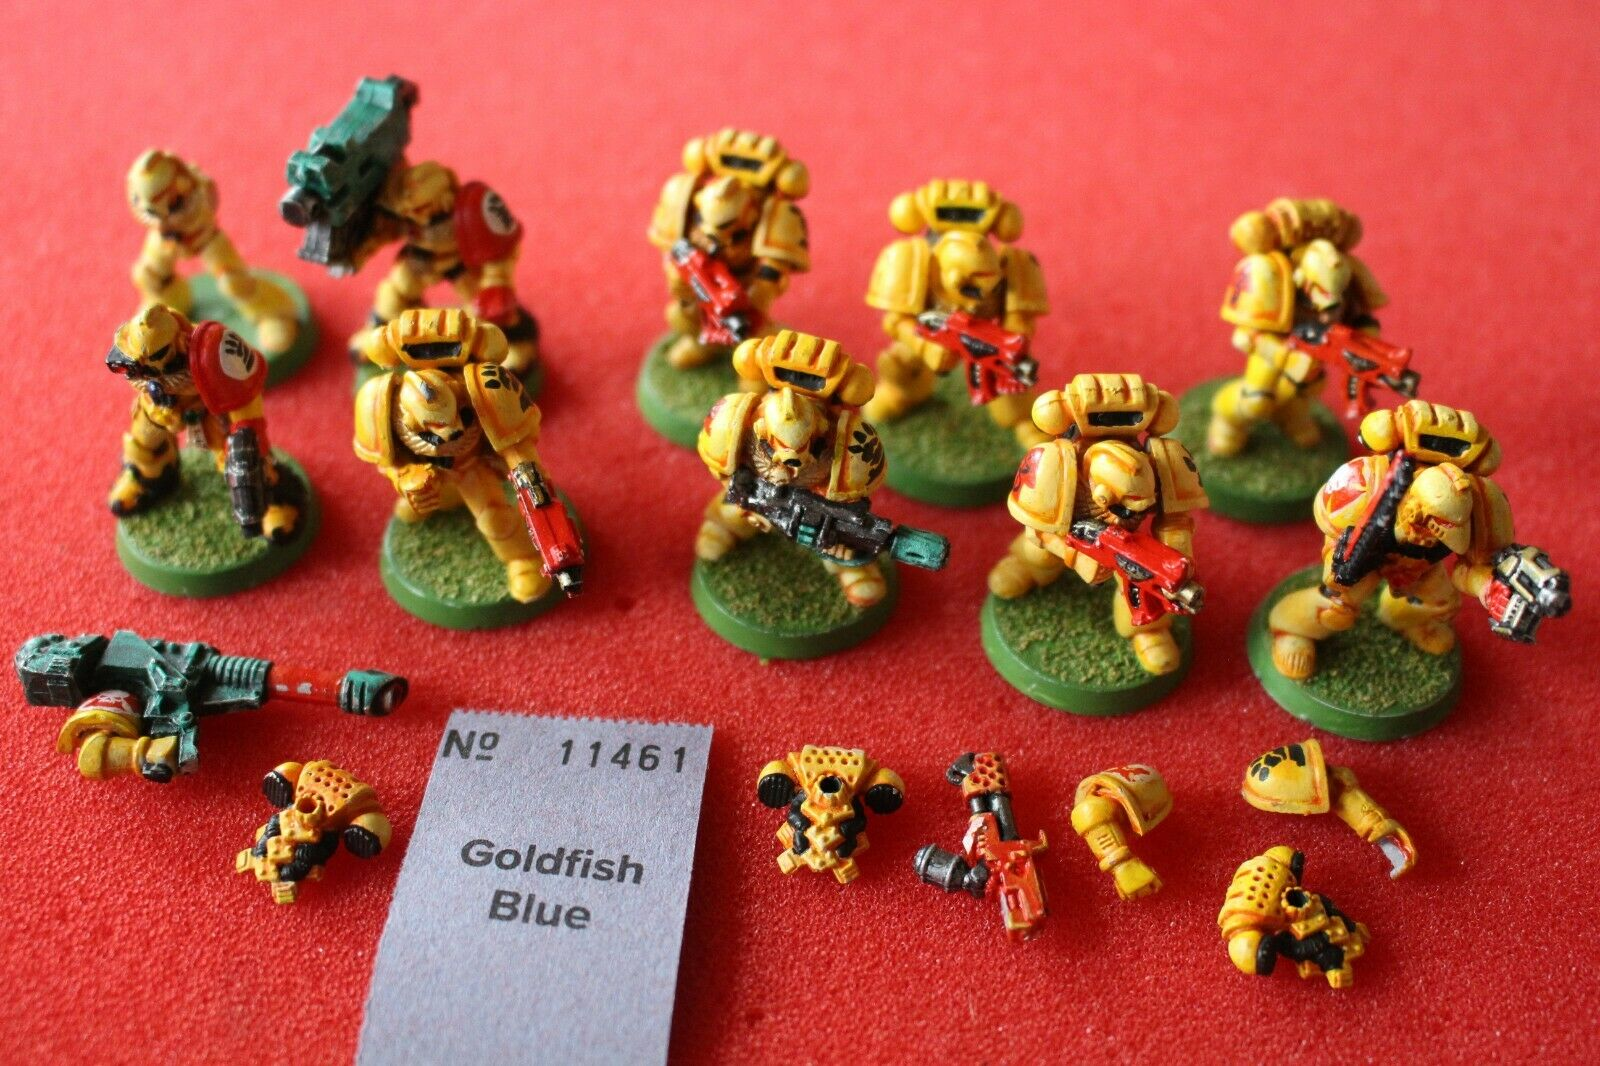 Games Workshop Warhammer 40k Imperial Fists Tactical Squad Metal Well Painted GW